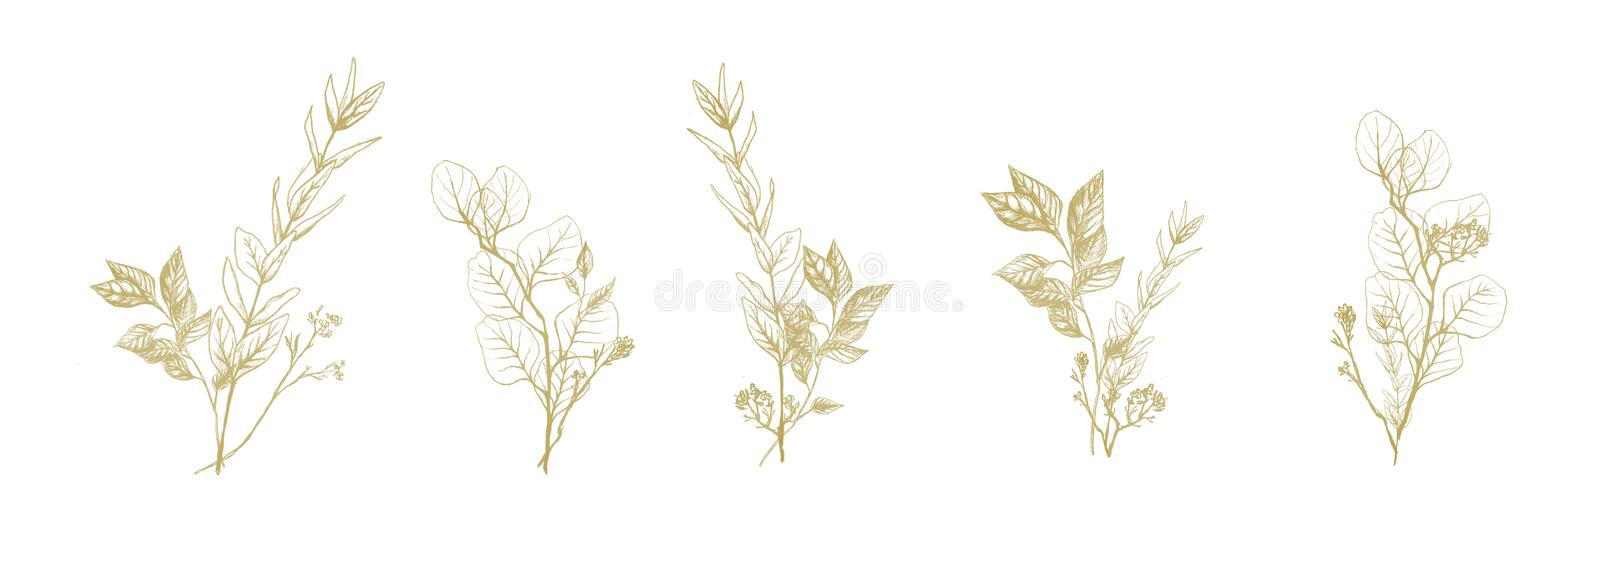 Set of golden floral compositions stock images